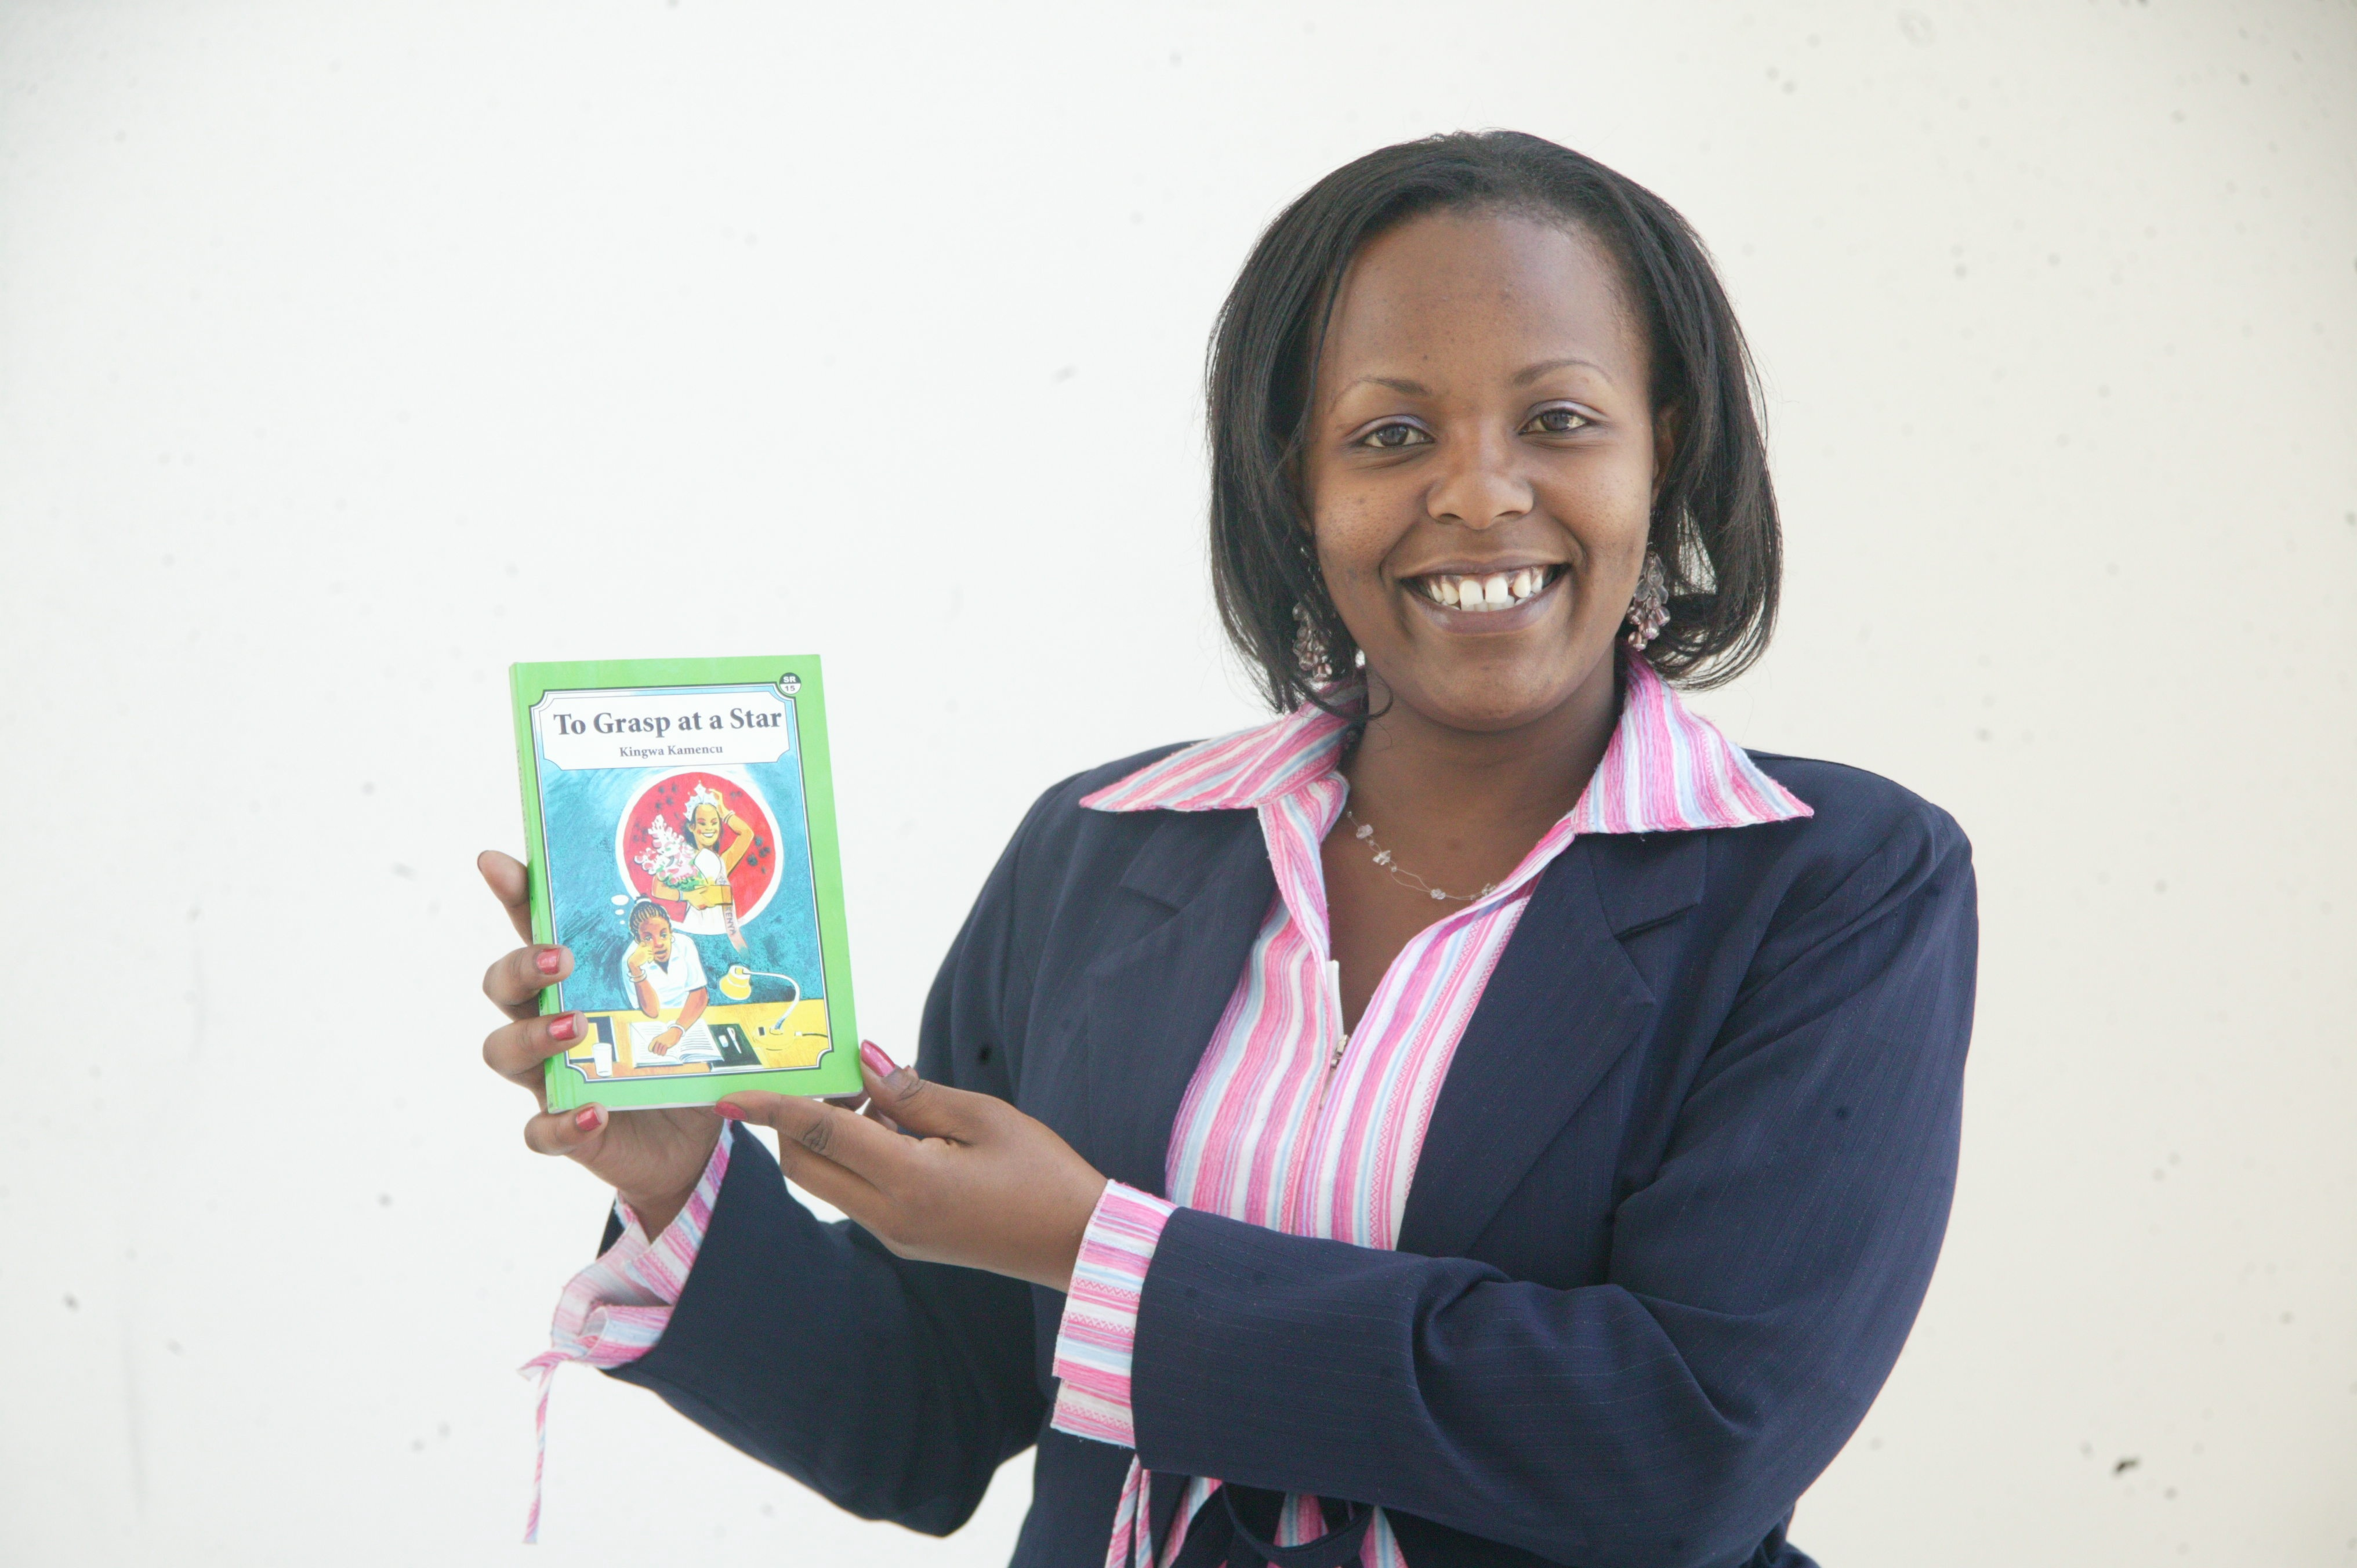 The author holds a copy of her book